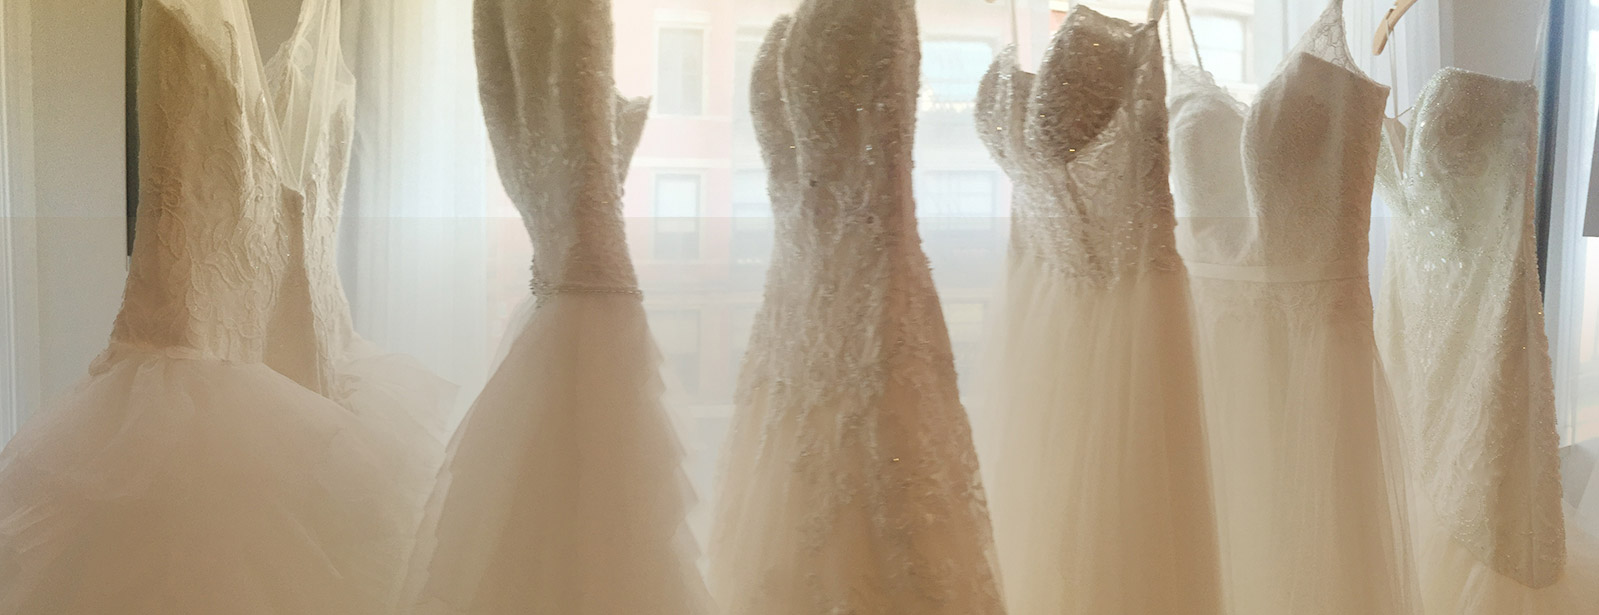 SAMPLE SALE Wedding dresses up to $800 off original price, including designer styles